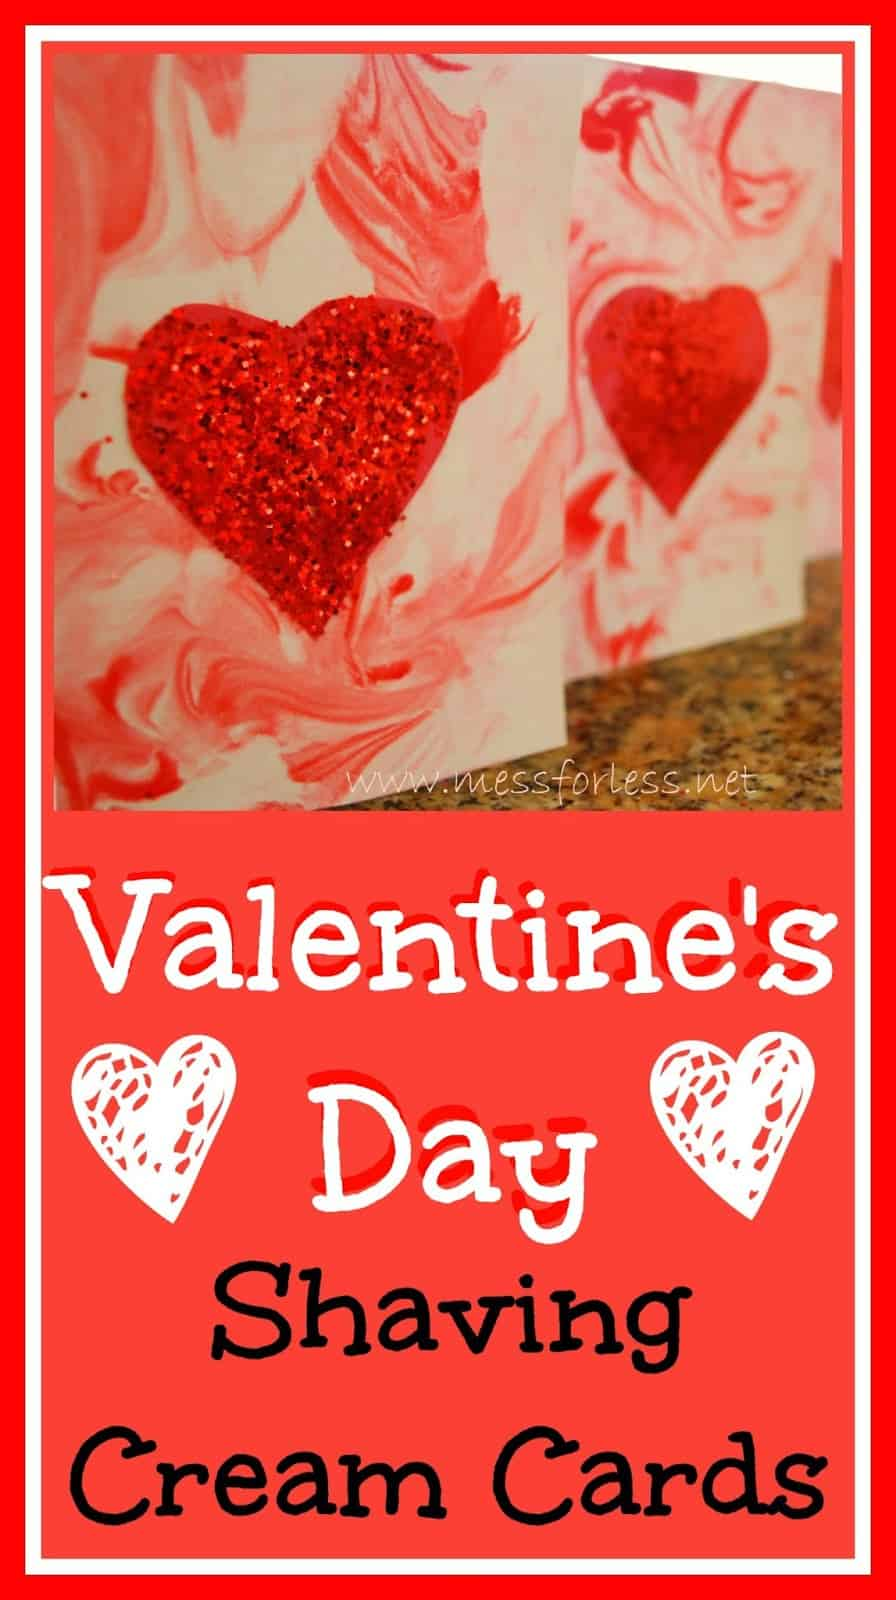 Valentine's Day Cards using Shaving Cream - Mess for Less